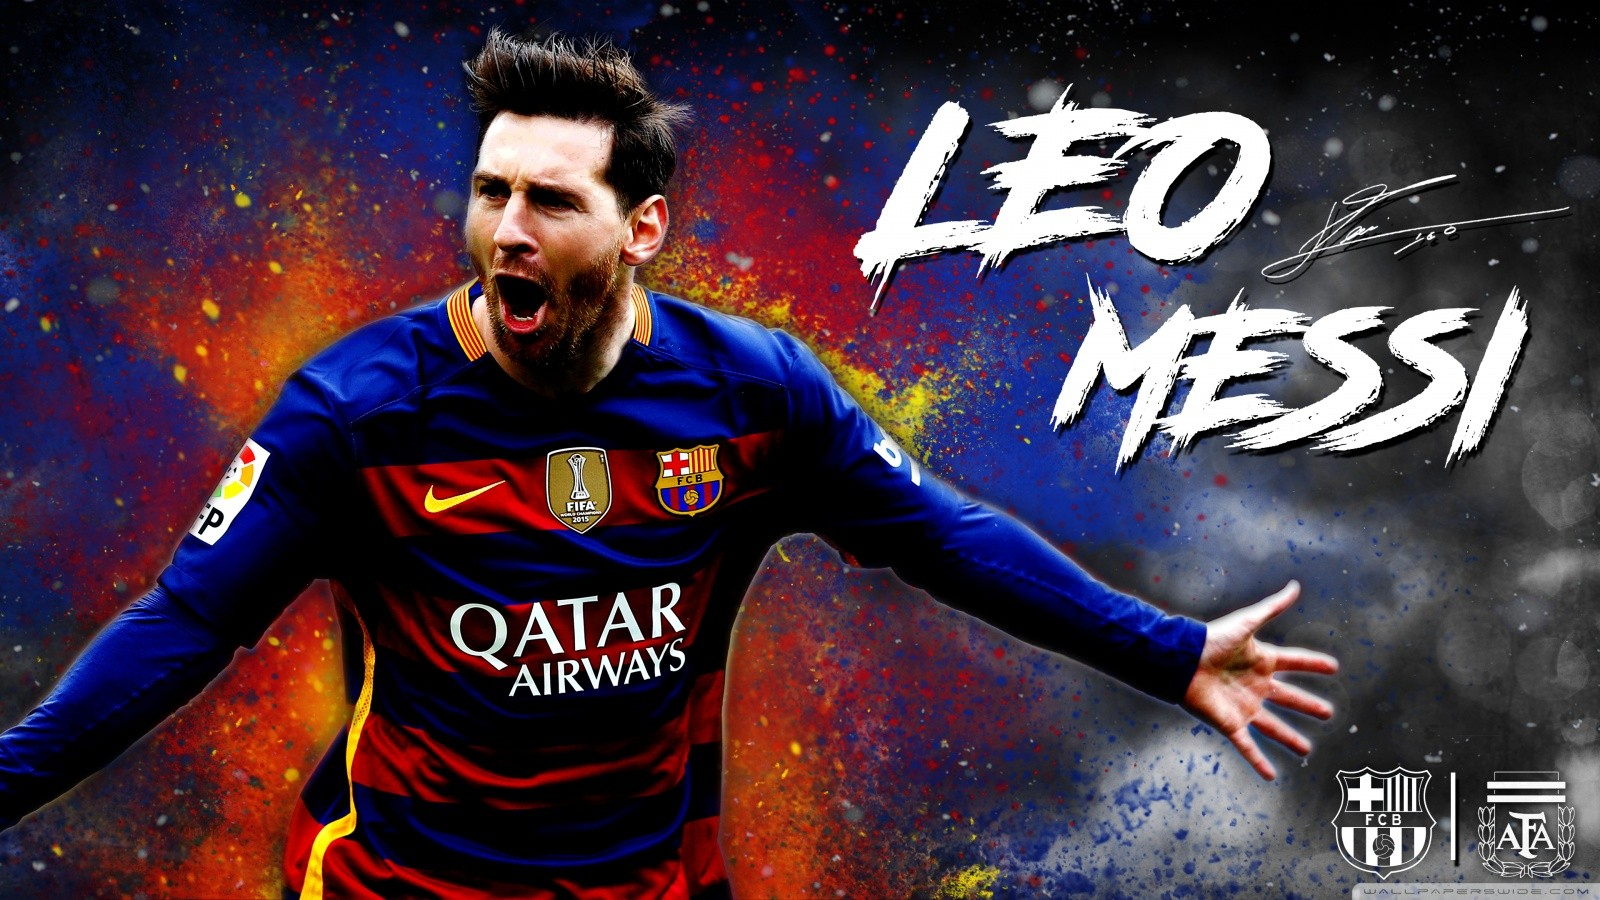 Lionel Messi 2017 Wallpapers High Definition Festival Wallpaper 1600x900